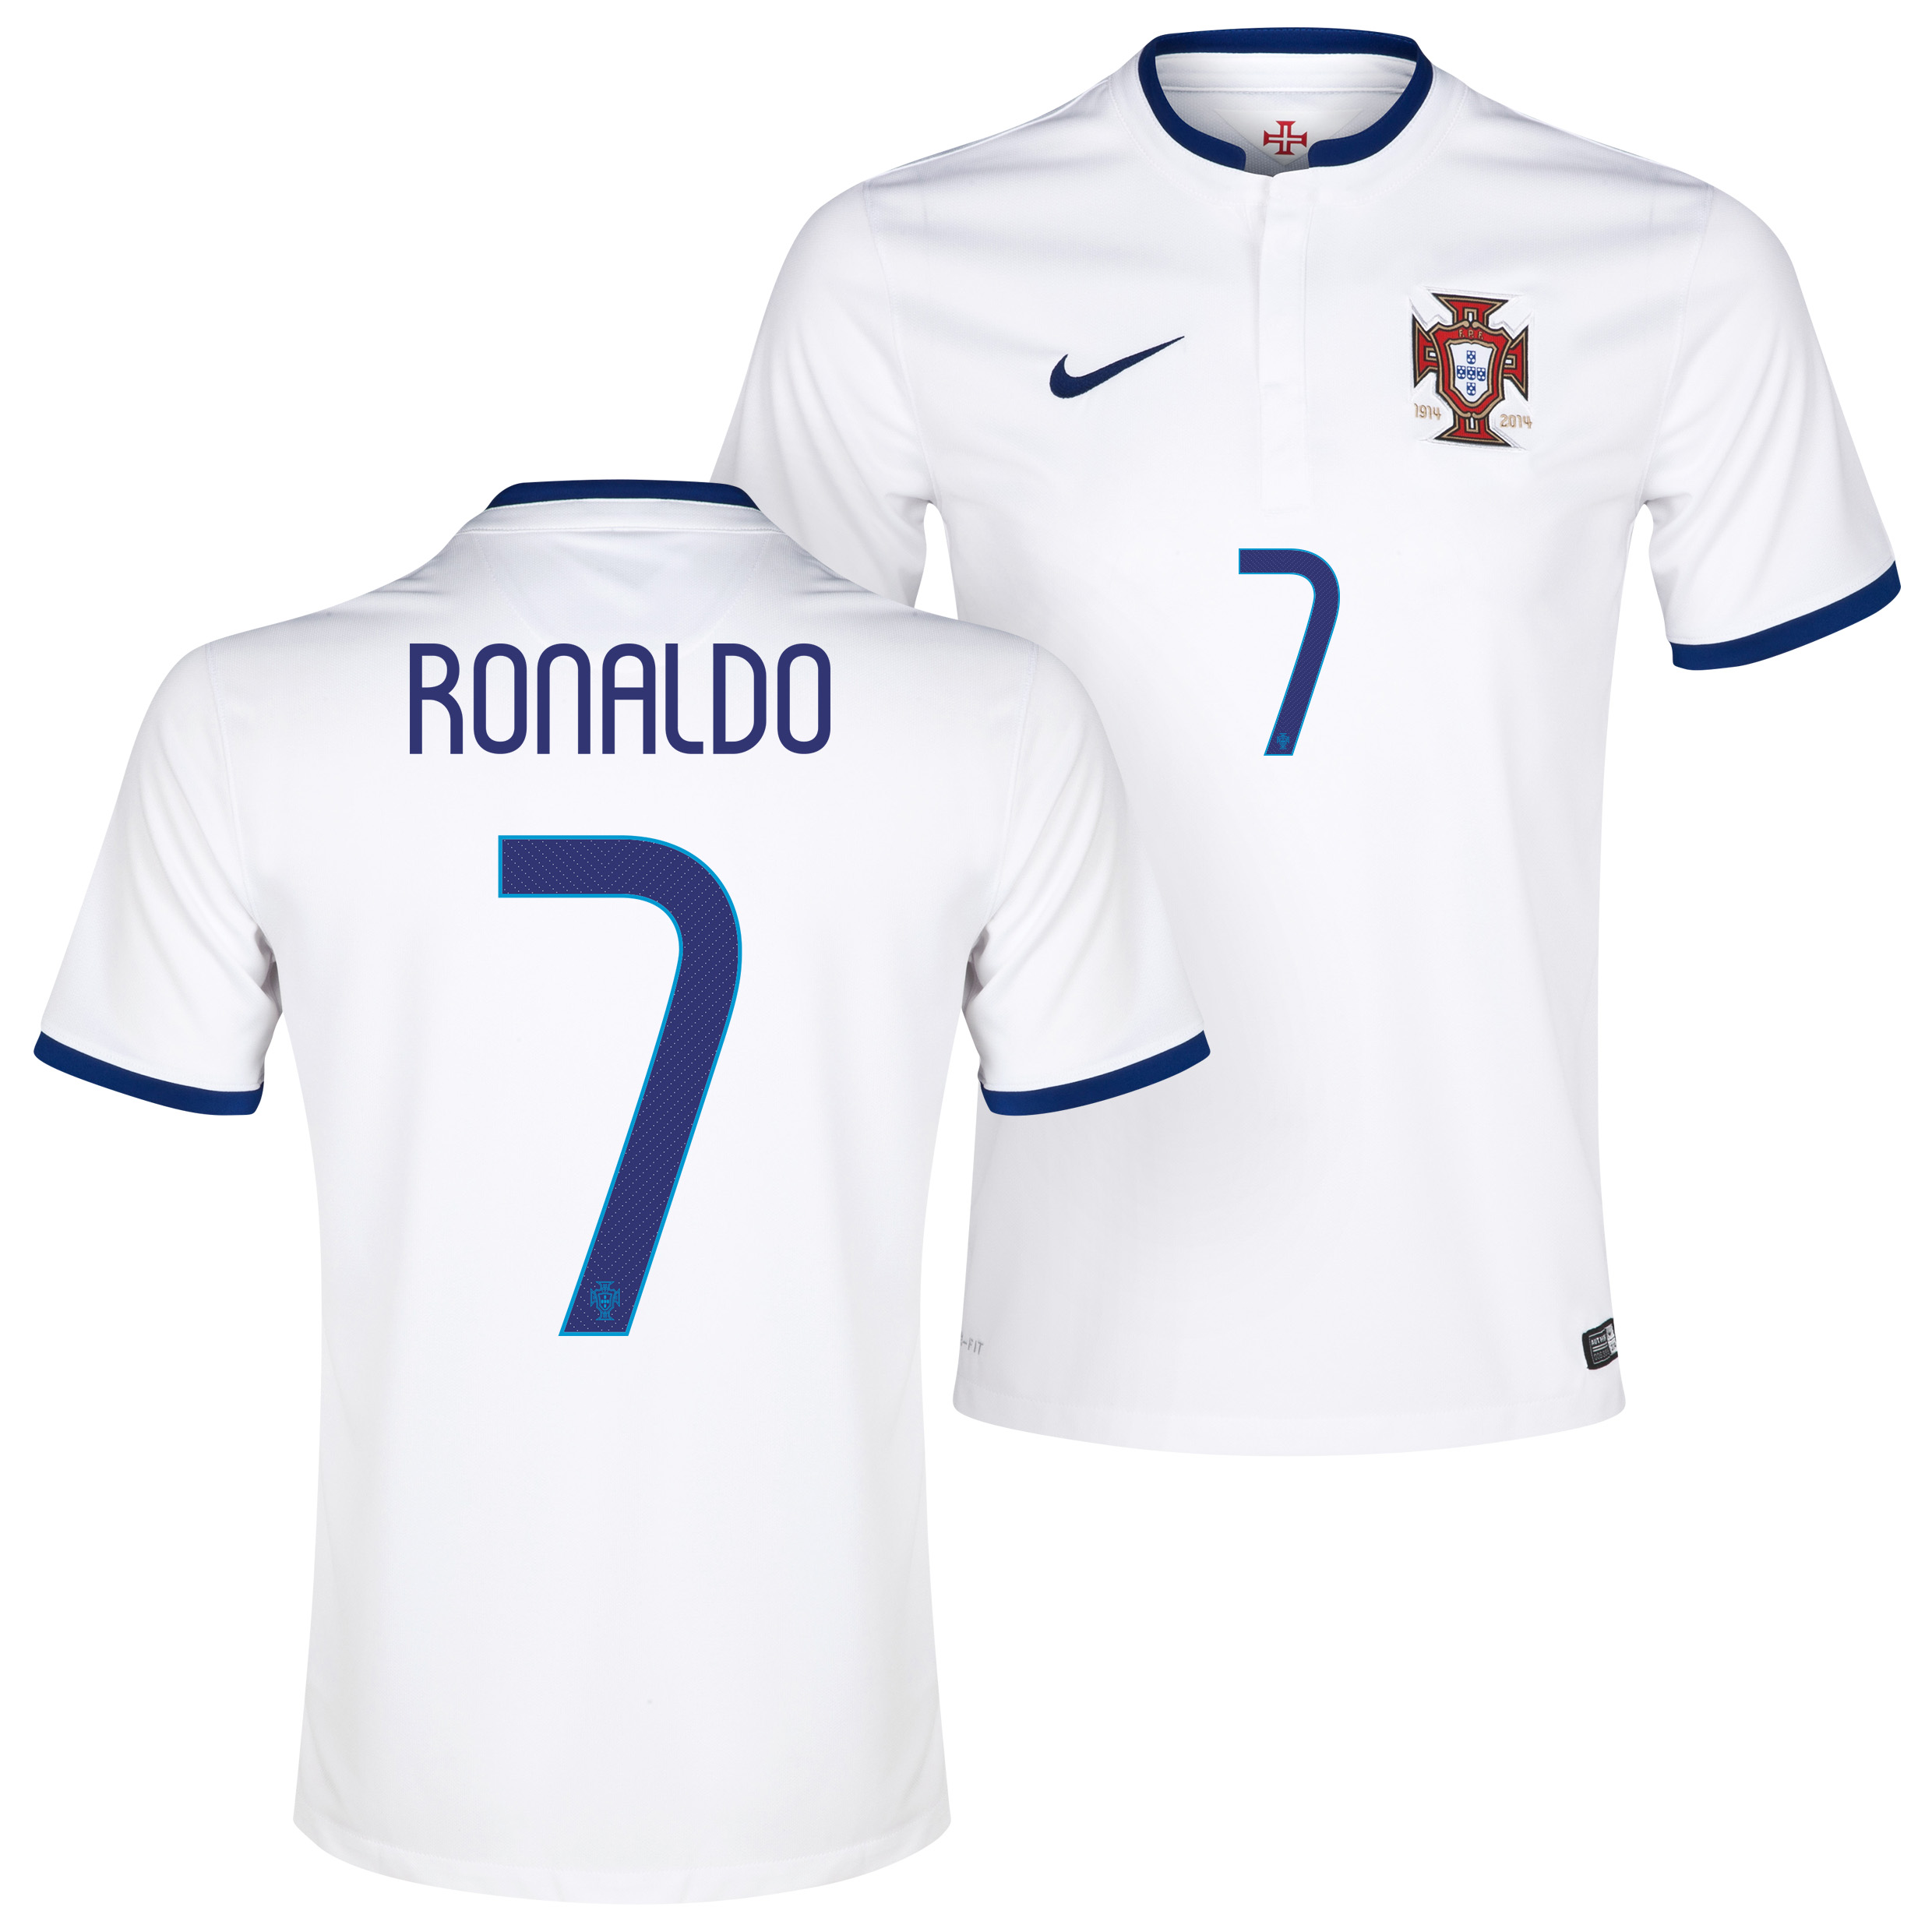 Portugal Away Shirt 2014/15 White with Ronaldo 7 printing